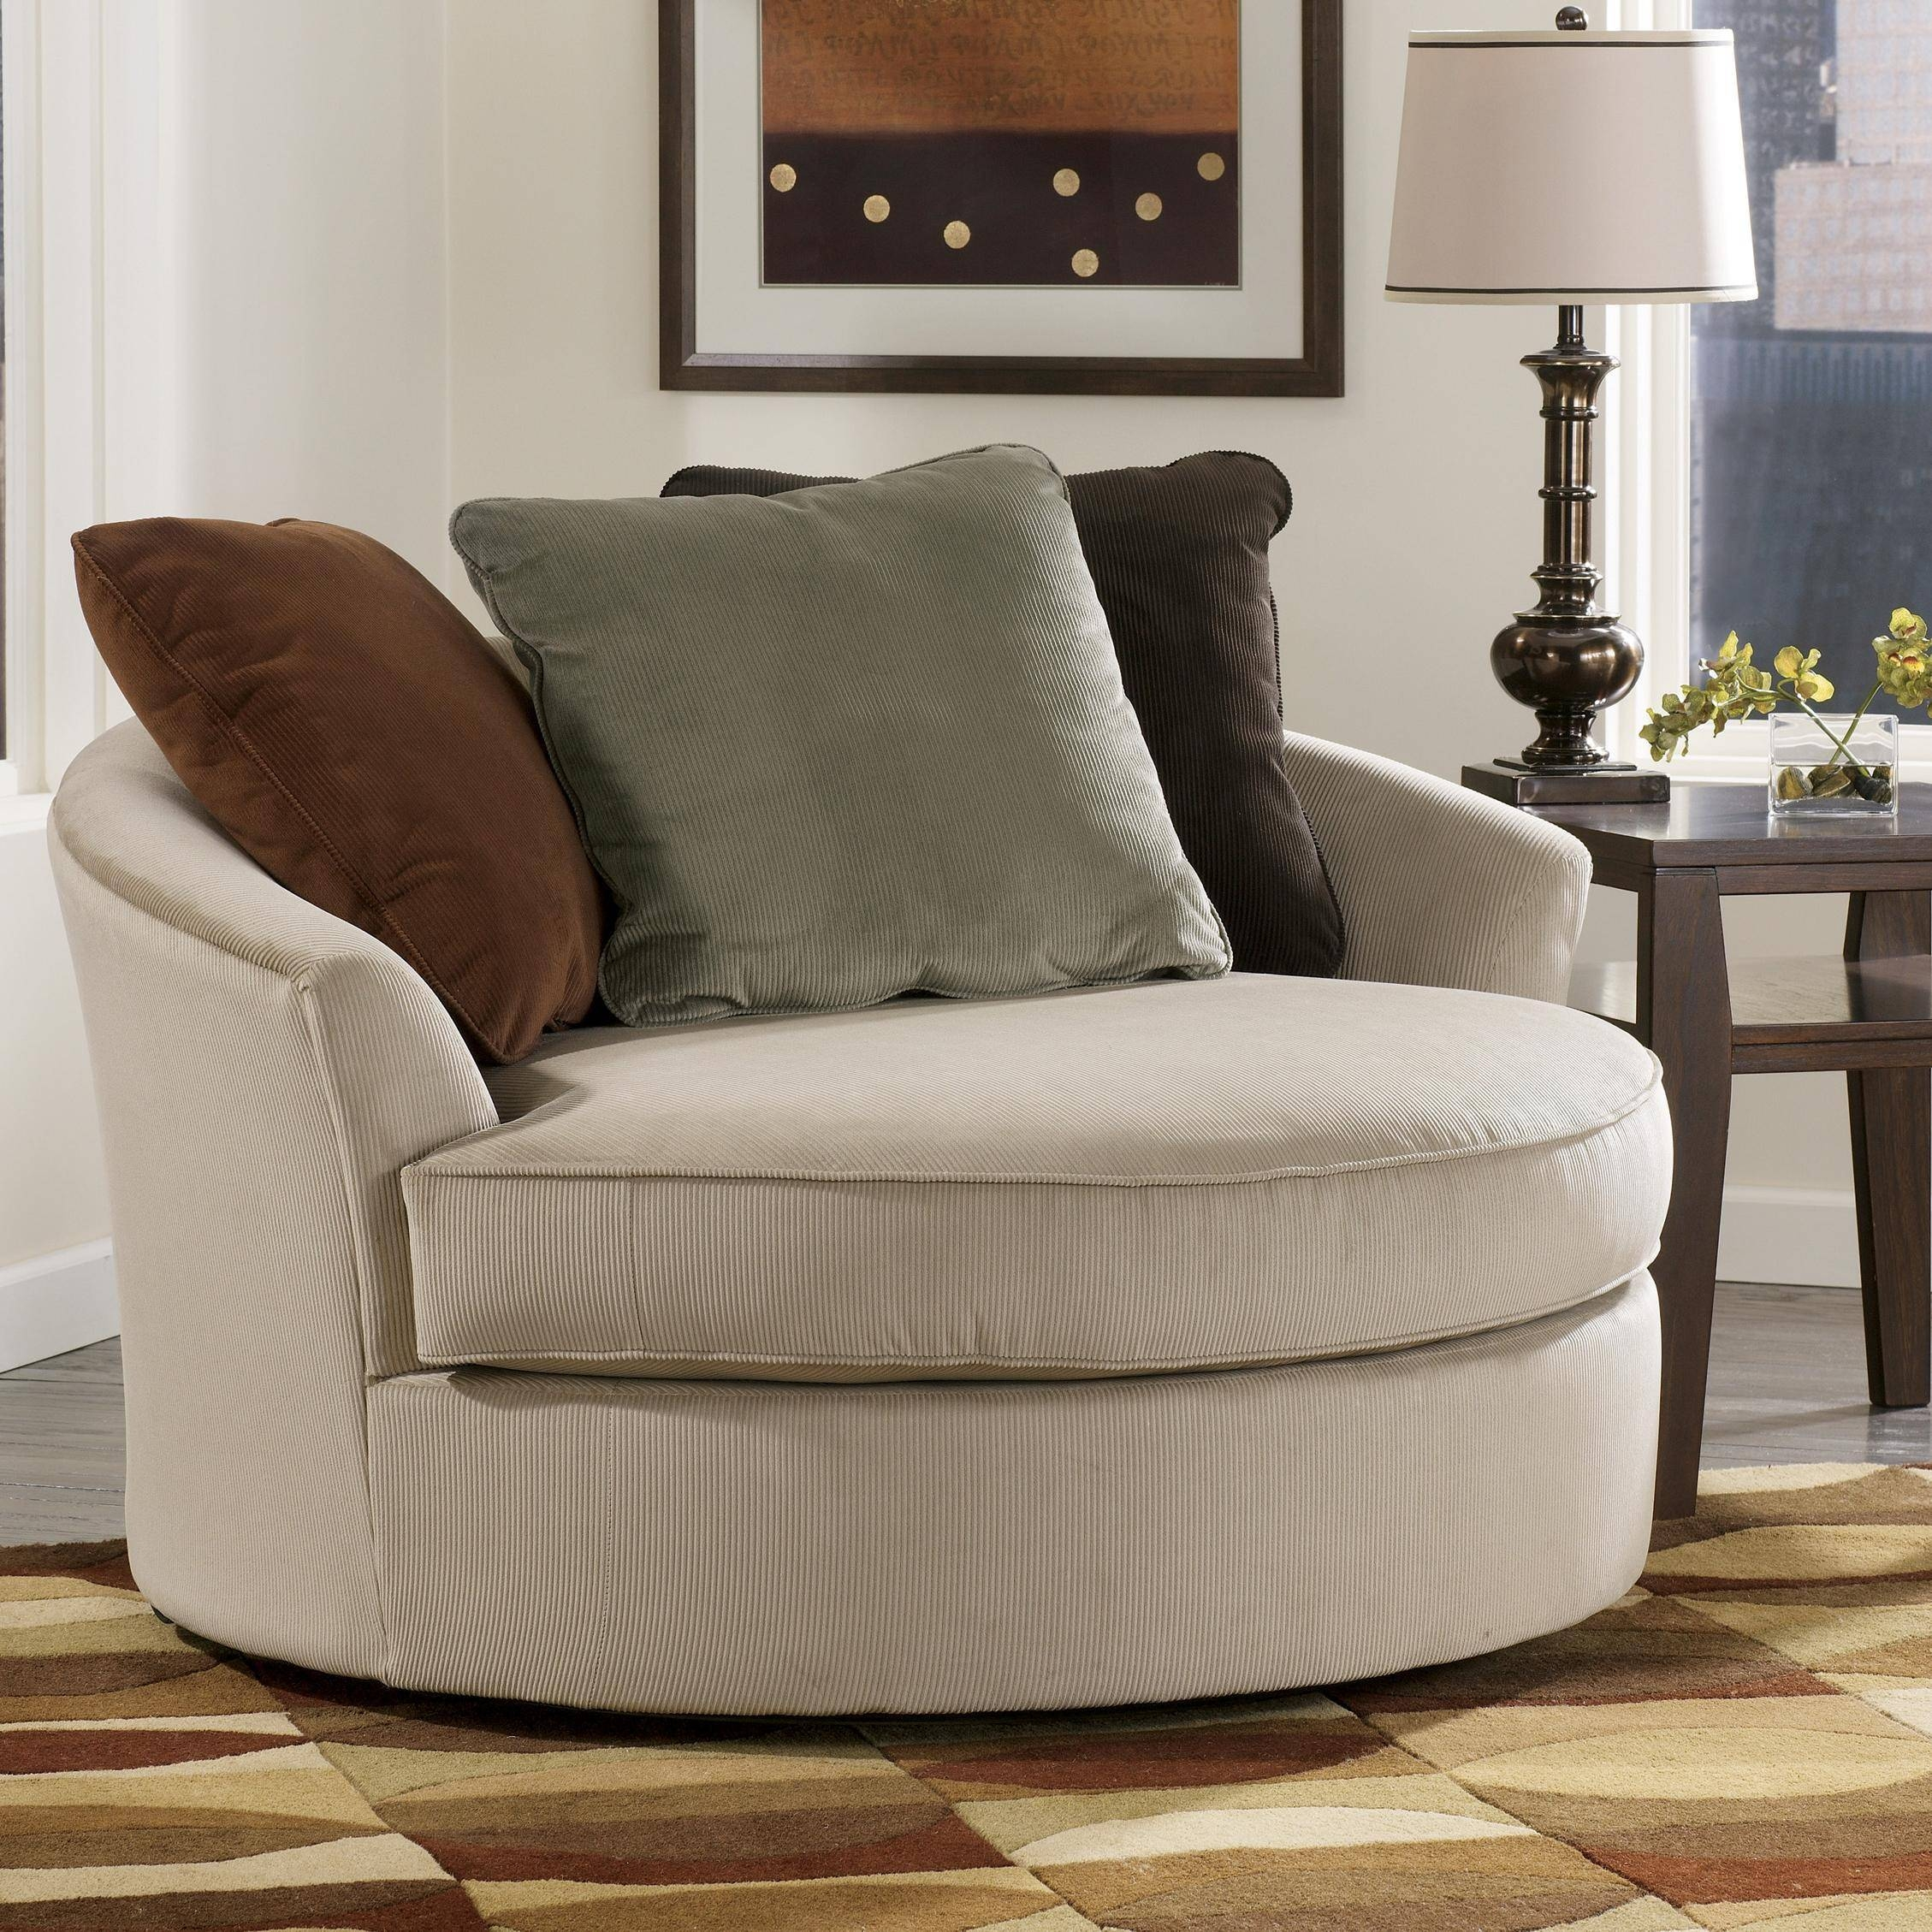 Round Sofa Chair Living Room Furniture | Tehranmix Decoration with Circle Sofa Chairs (Image 20 of 30)